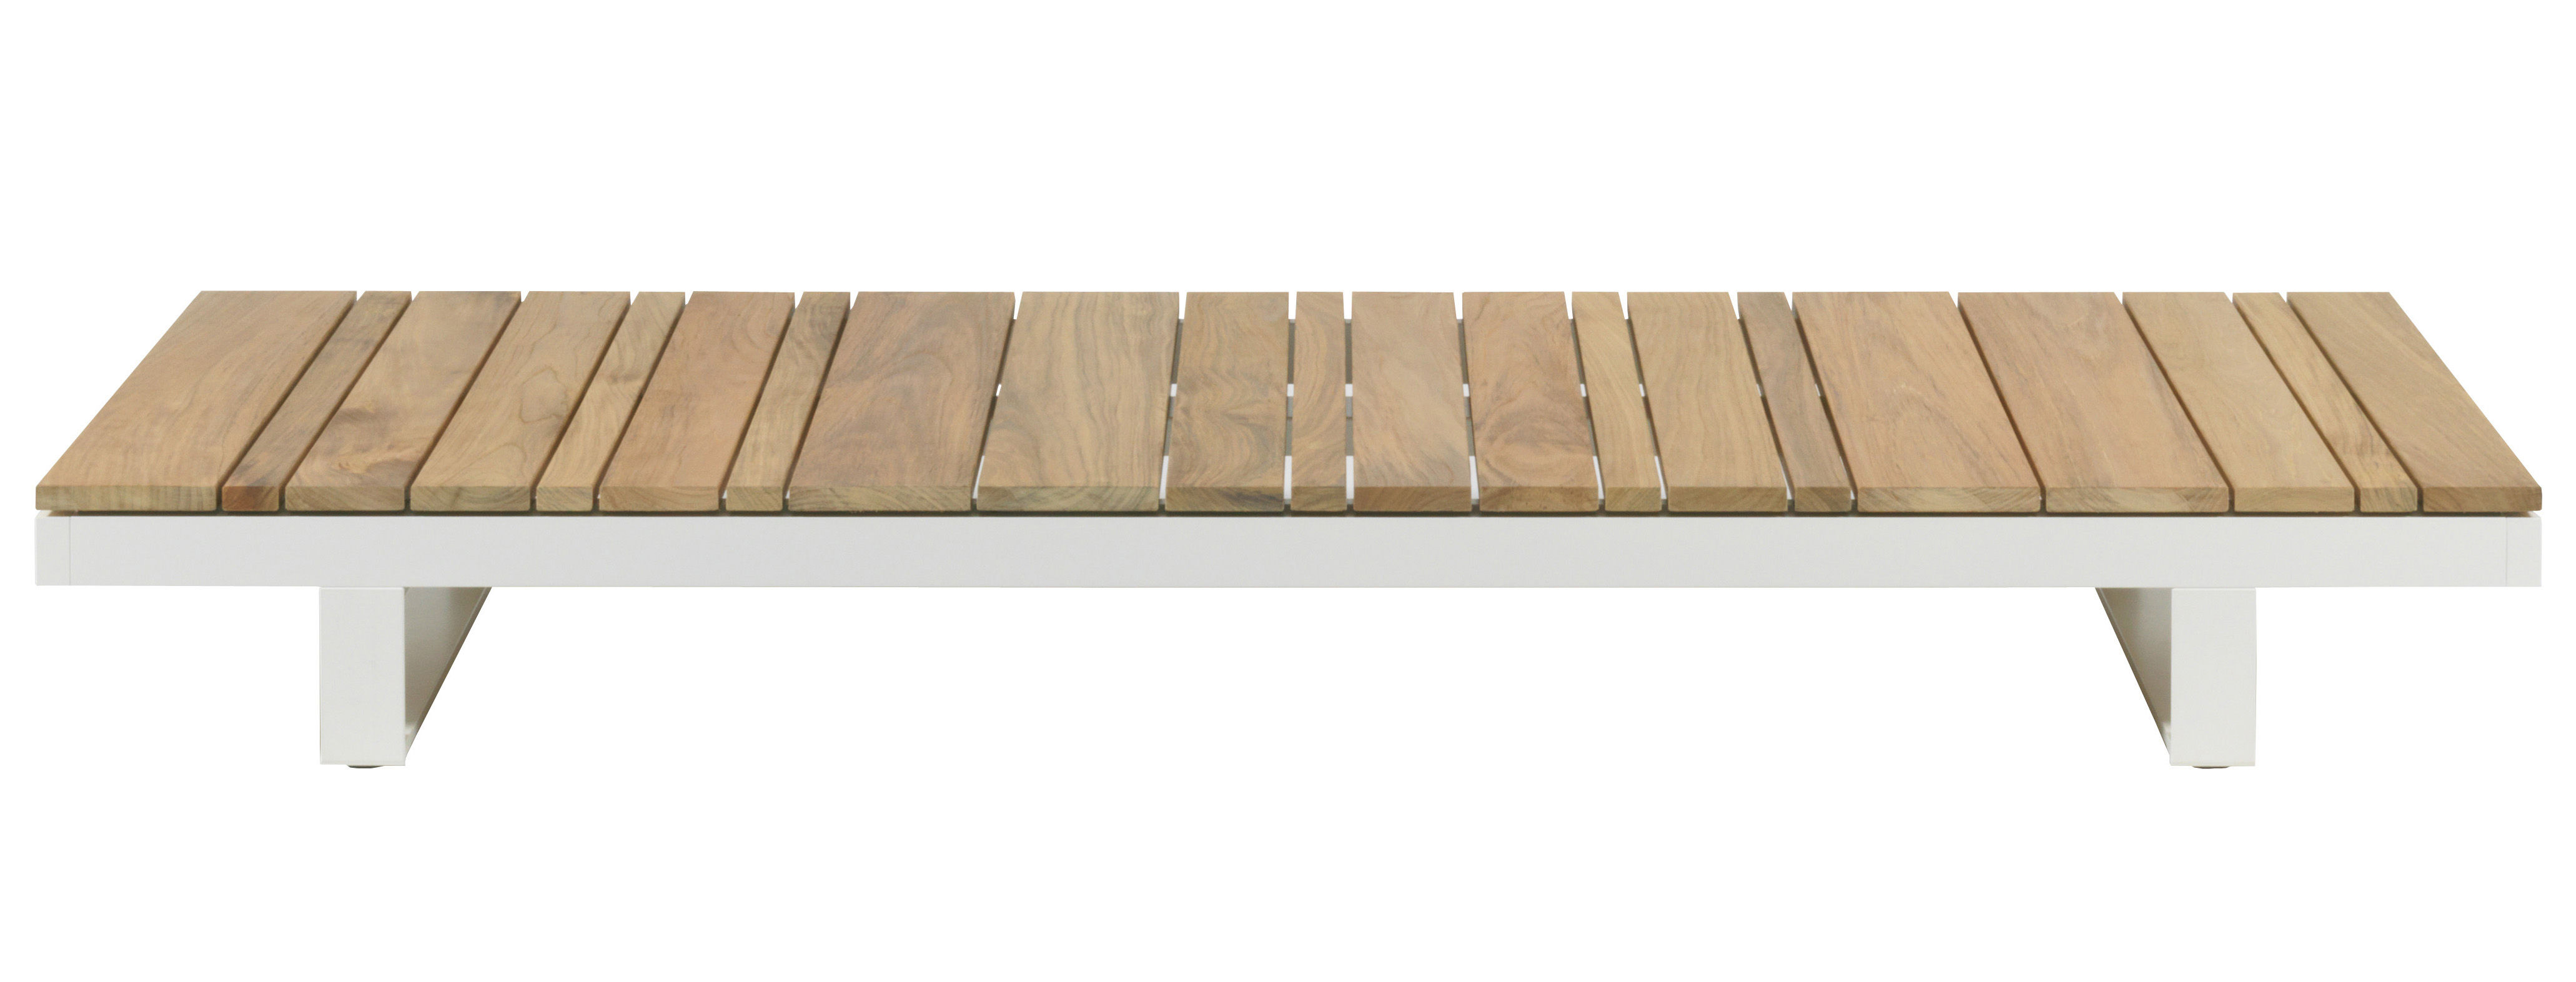 table basse pure teck 180 x 90 cm 90 x 180 cm teck viteo. Black Bedroom Furniture Sets. Home Design Ideas